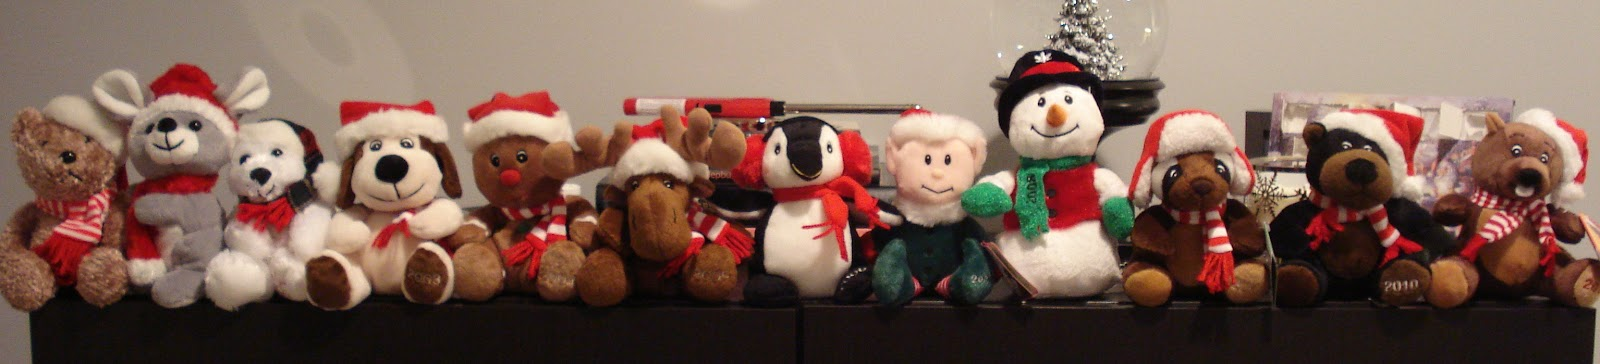 last but not least is my collection of sears stuffies i am not sure if they do this in the states but in canada every year sears comes out with an annual - Sears Christmas Decorations